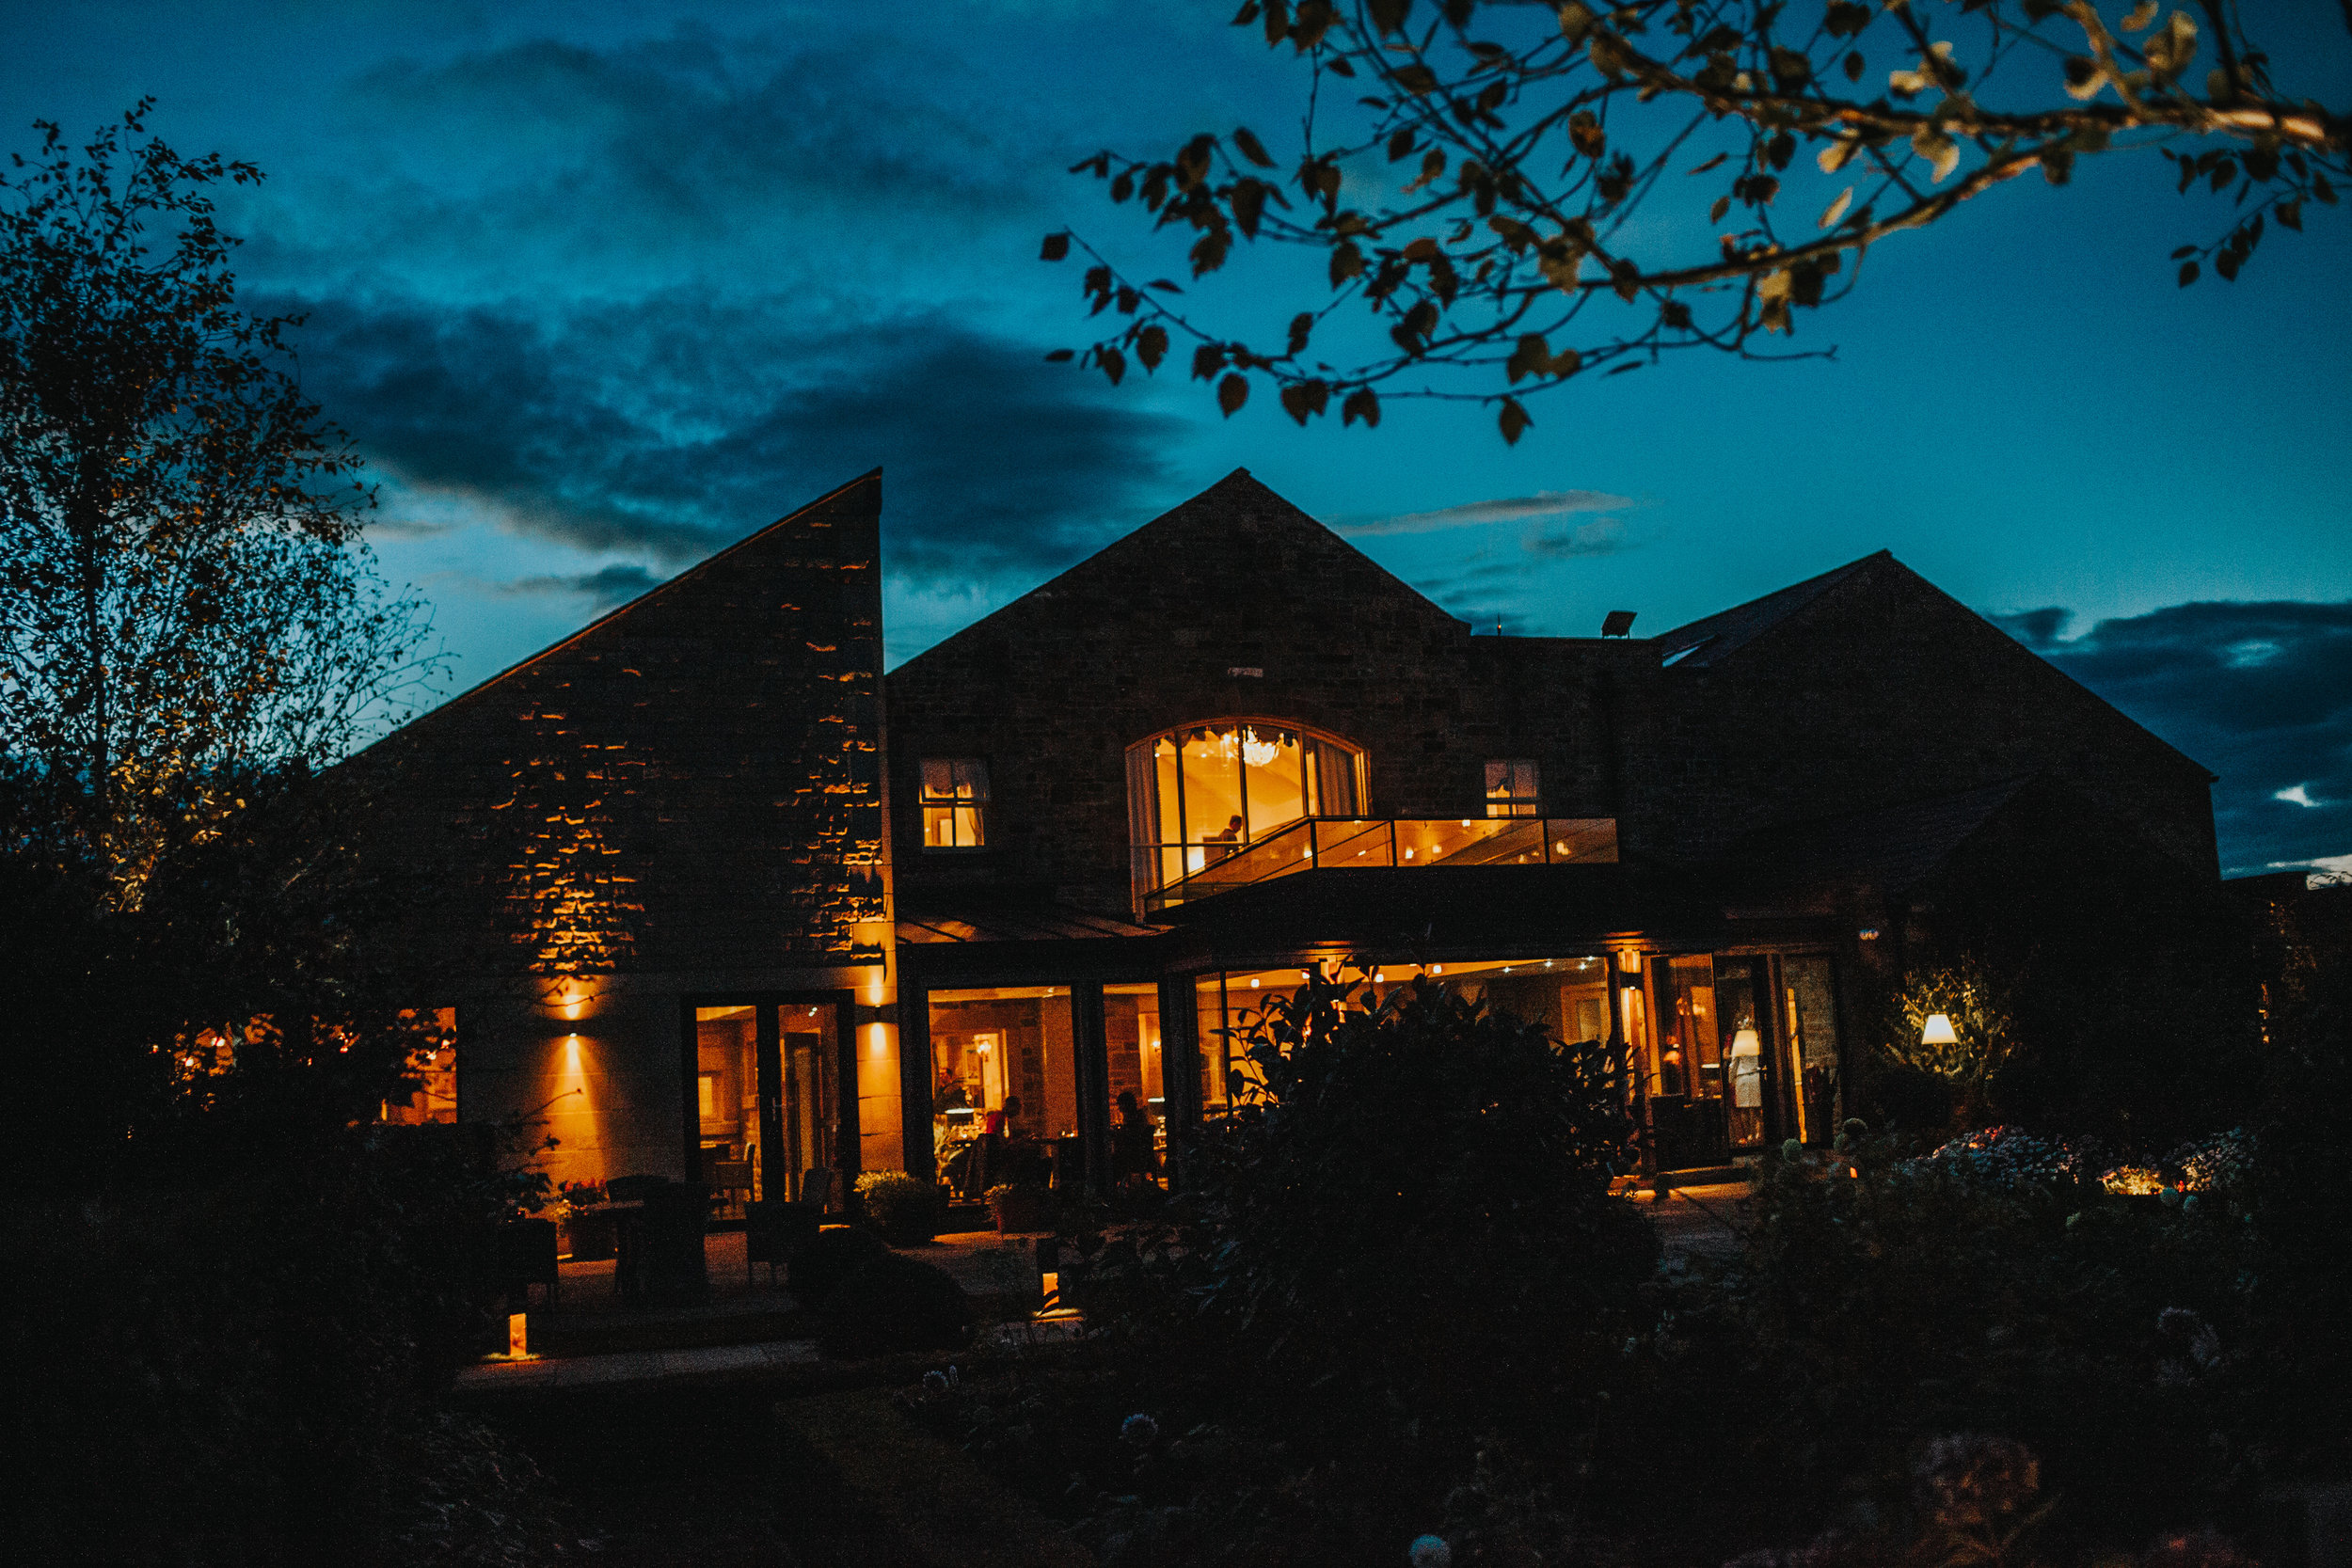 Stanley House Hotel and Spa and night falls.